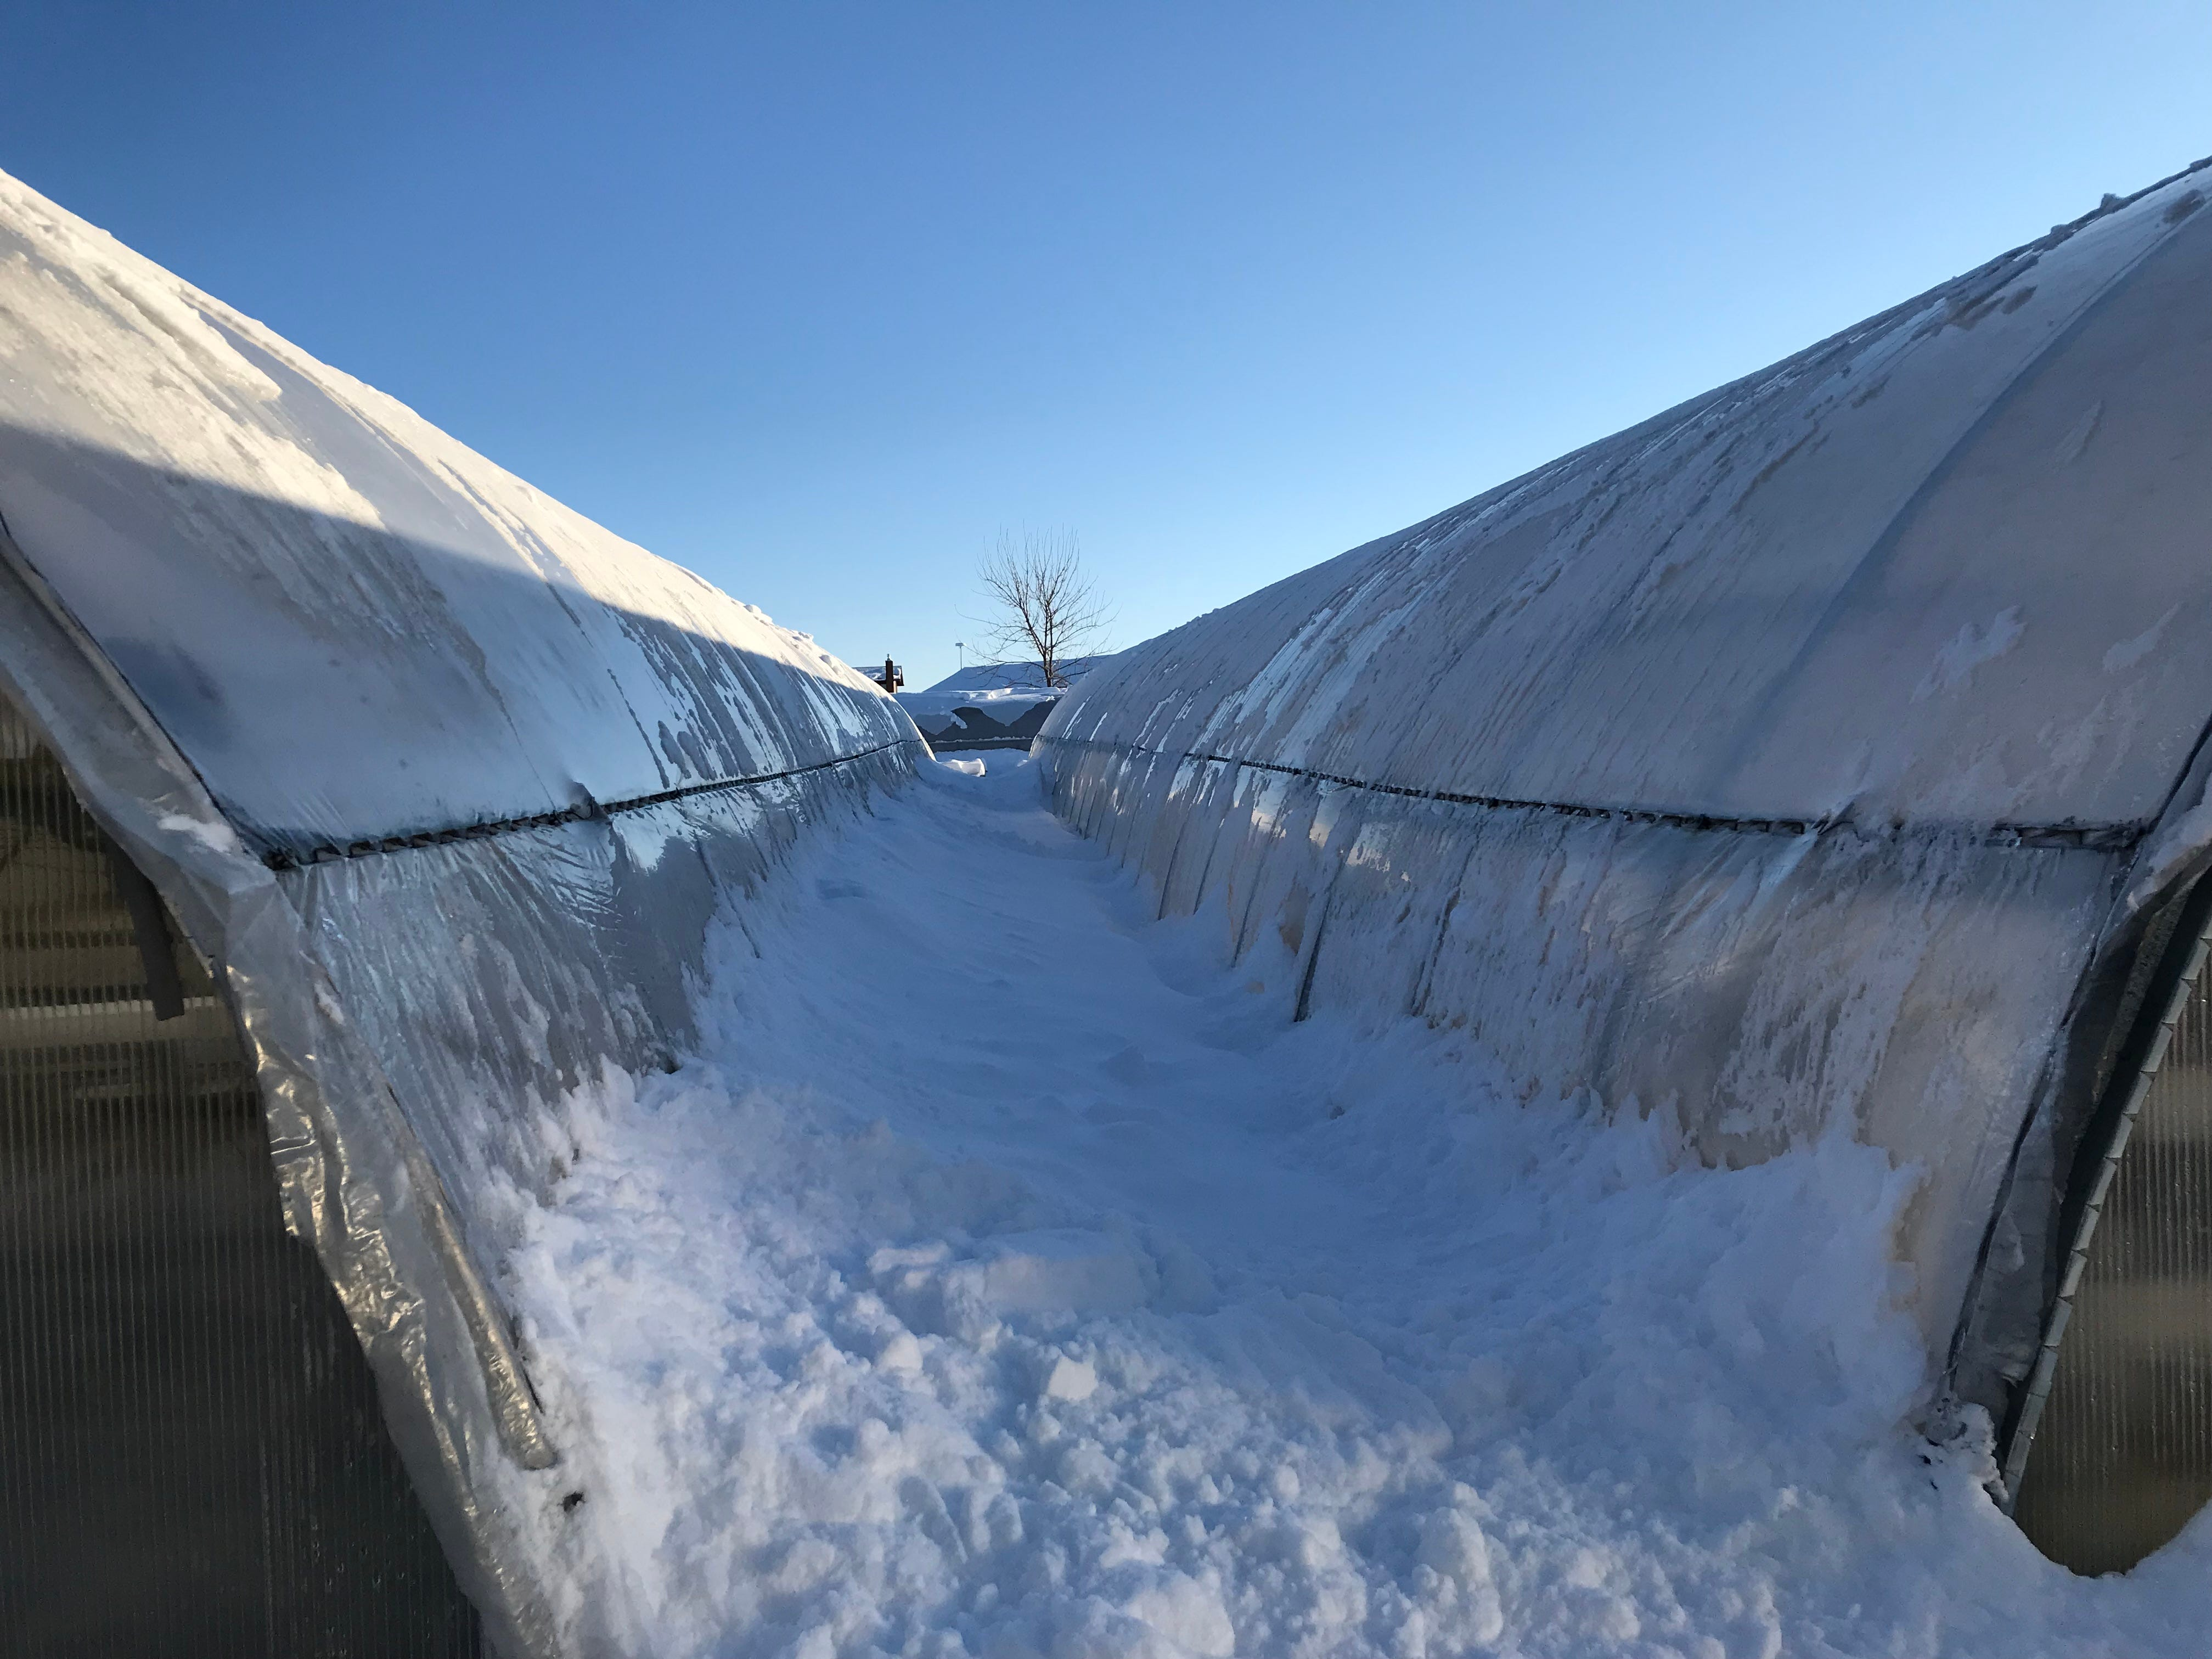 Snow piles up between two greenhouses at Bundi Gardens after sliding off the roofs. Snow did not slide off a greenhouse that collapsed sometime Wednesday evening or Thursday morning.